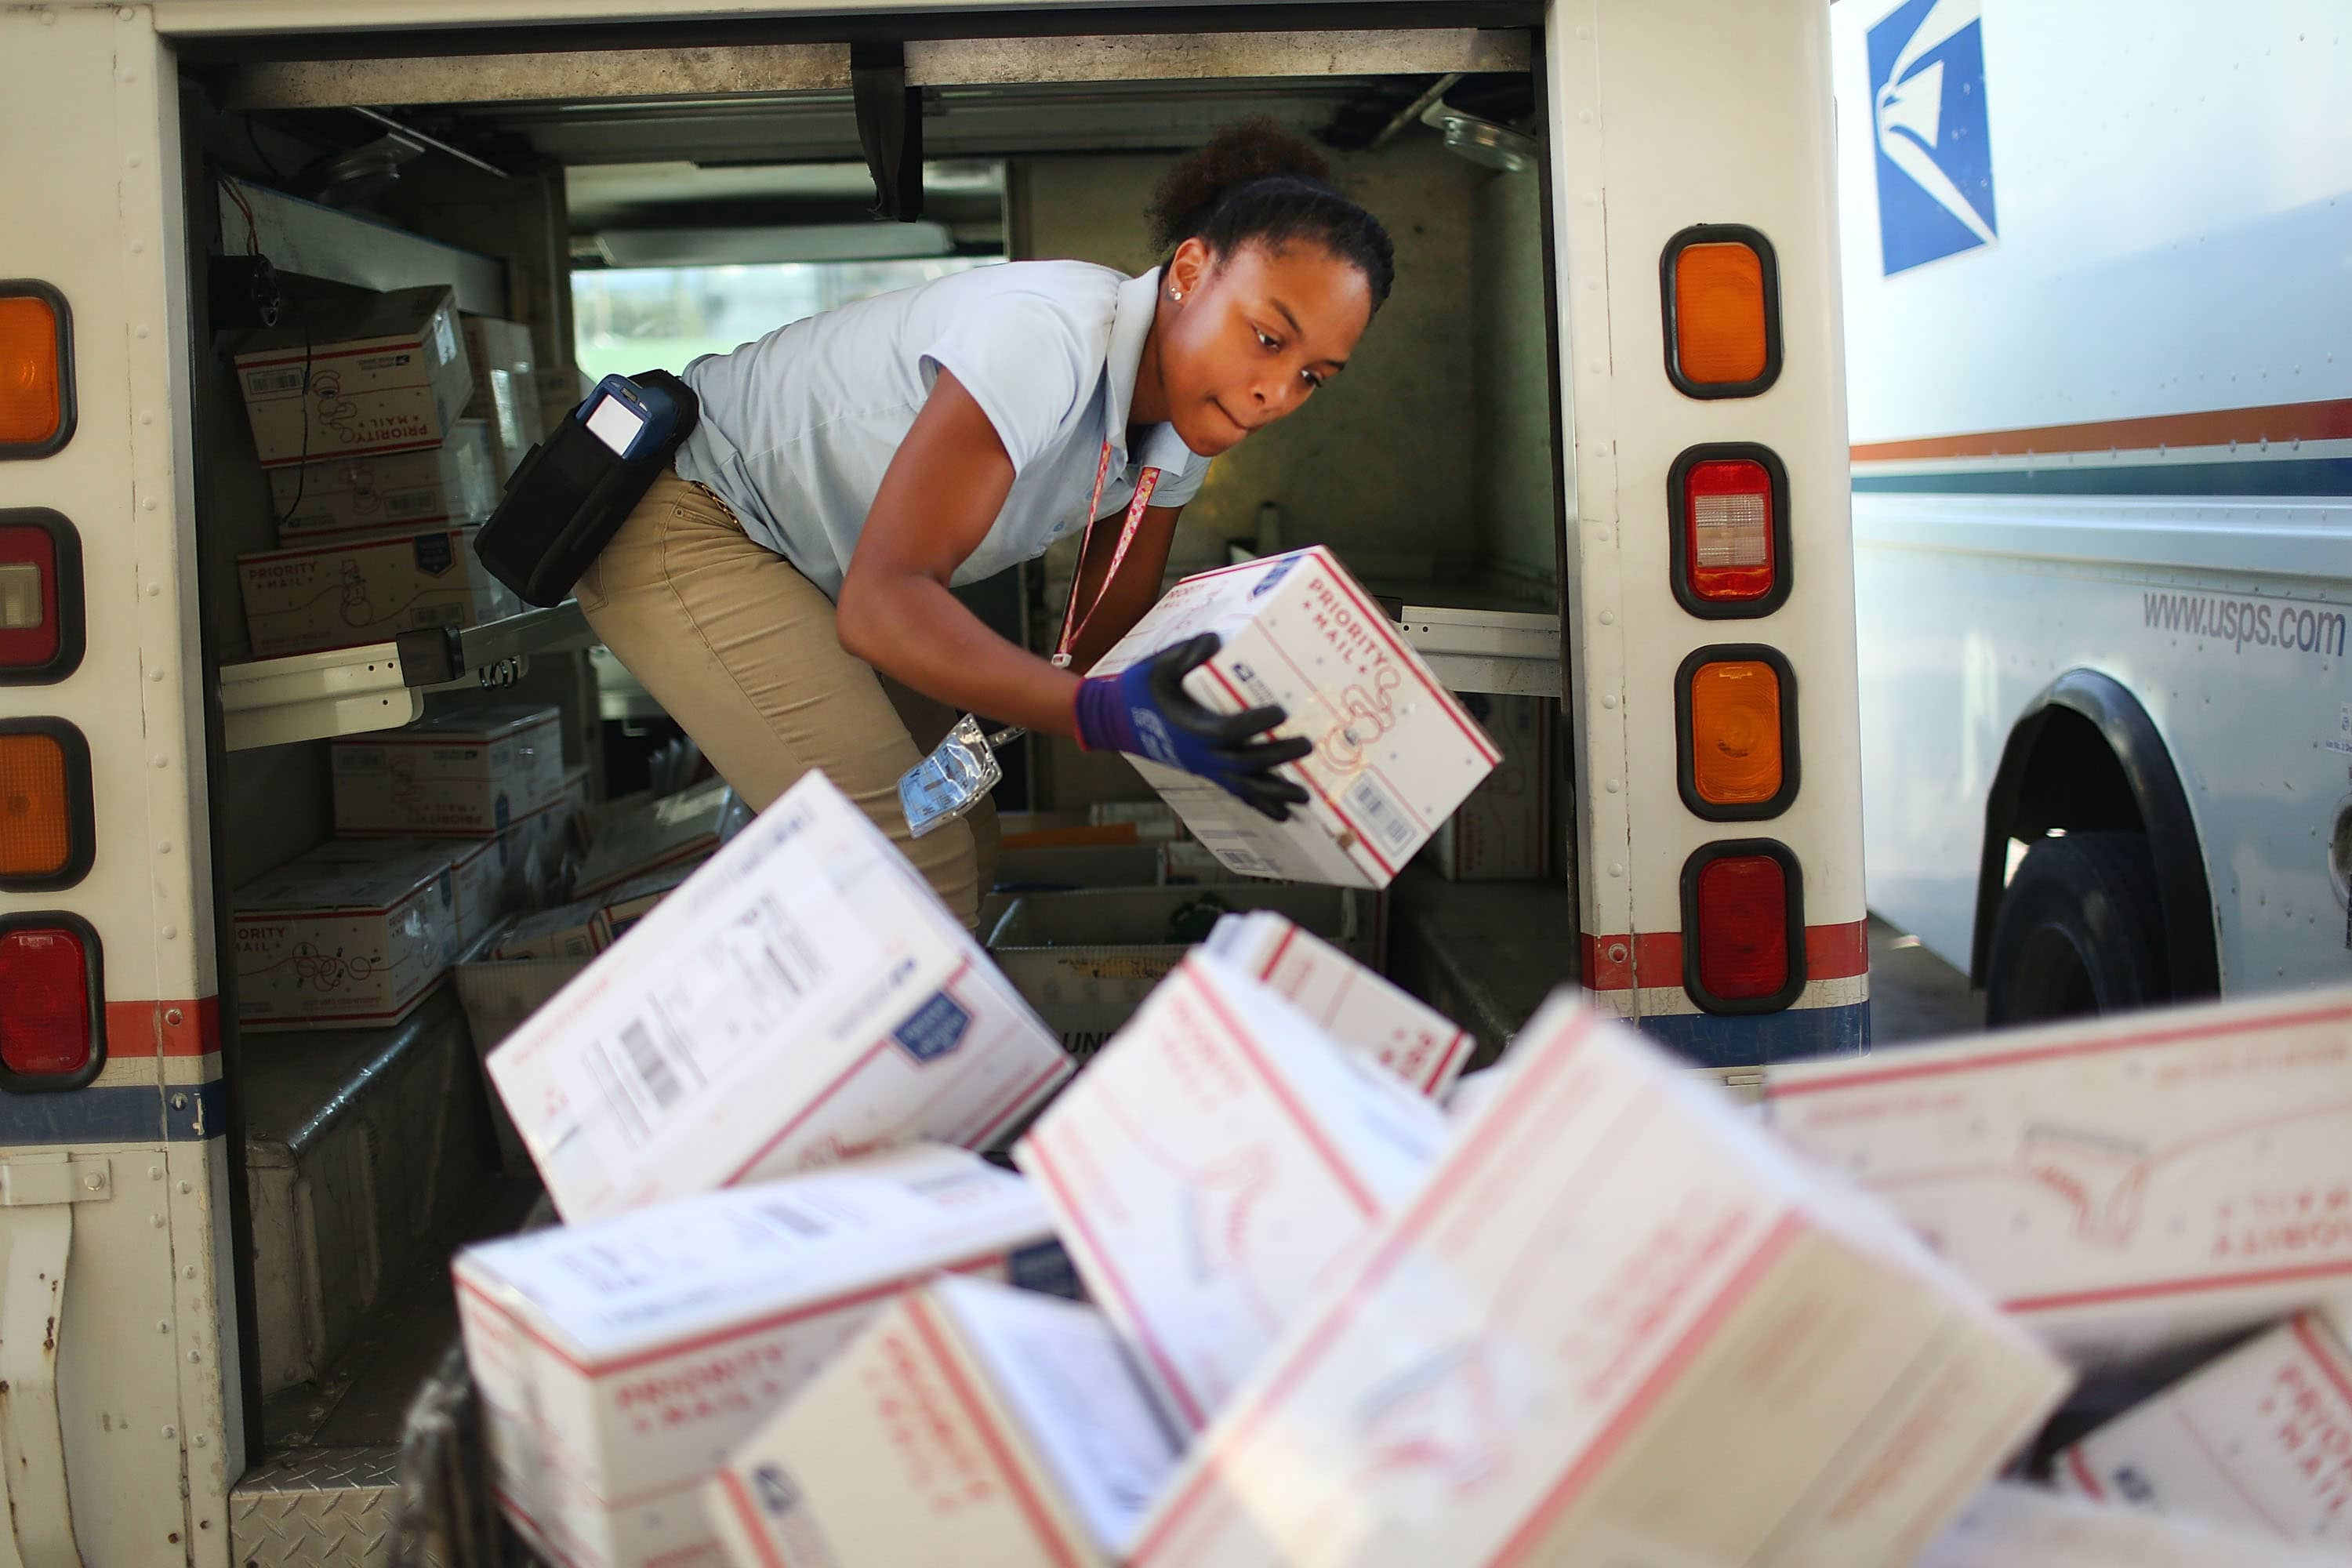 Global postal group reaches deal to avoid US withdrawal